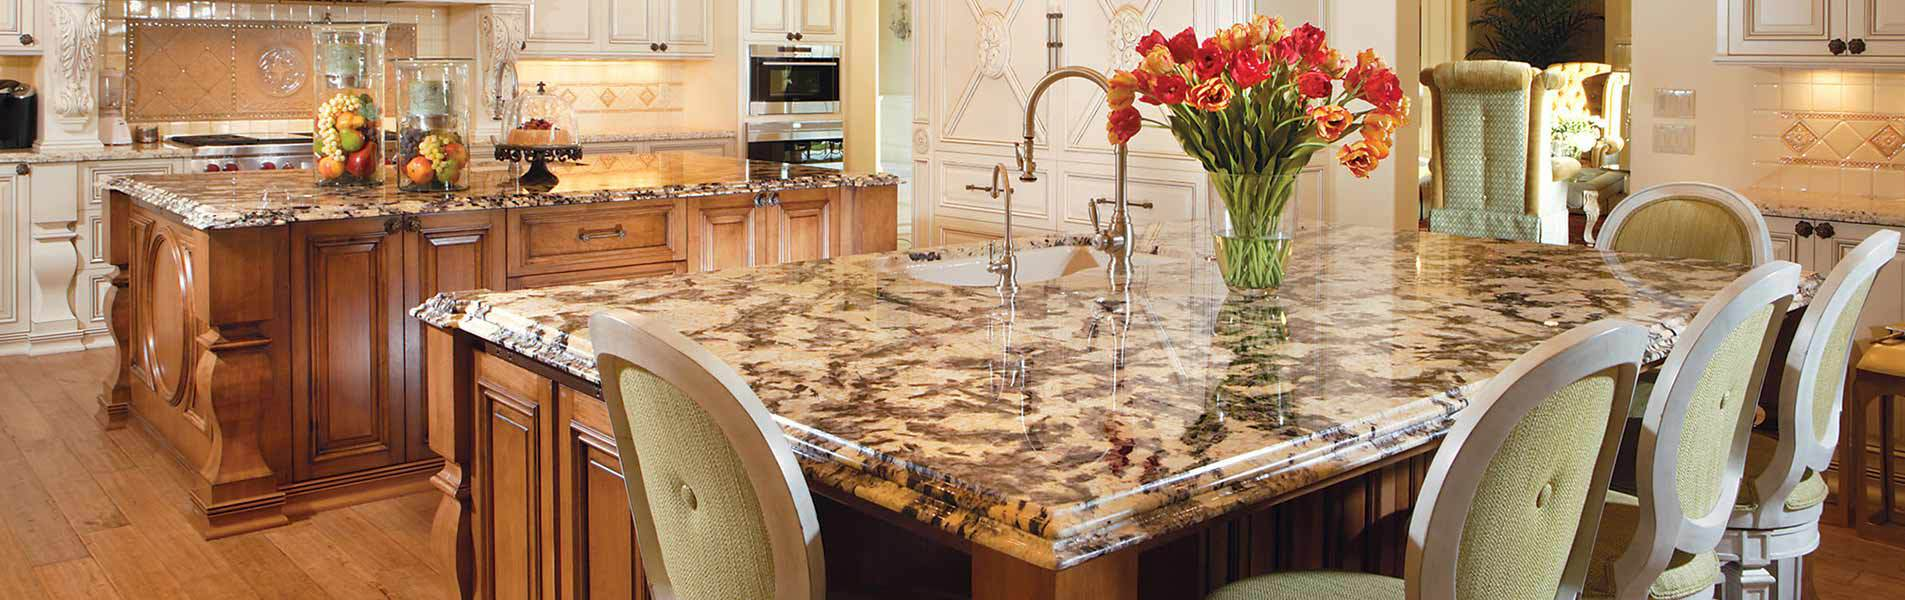 granite kitchen countertops San Leandro, CA